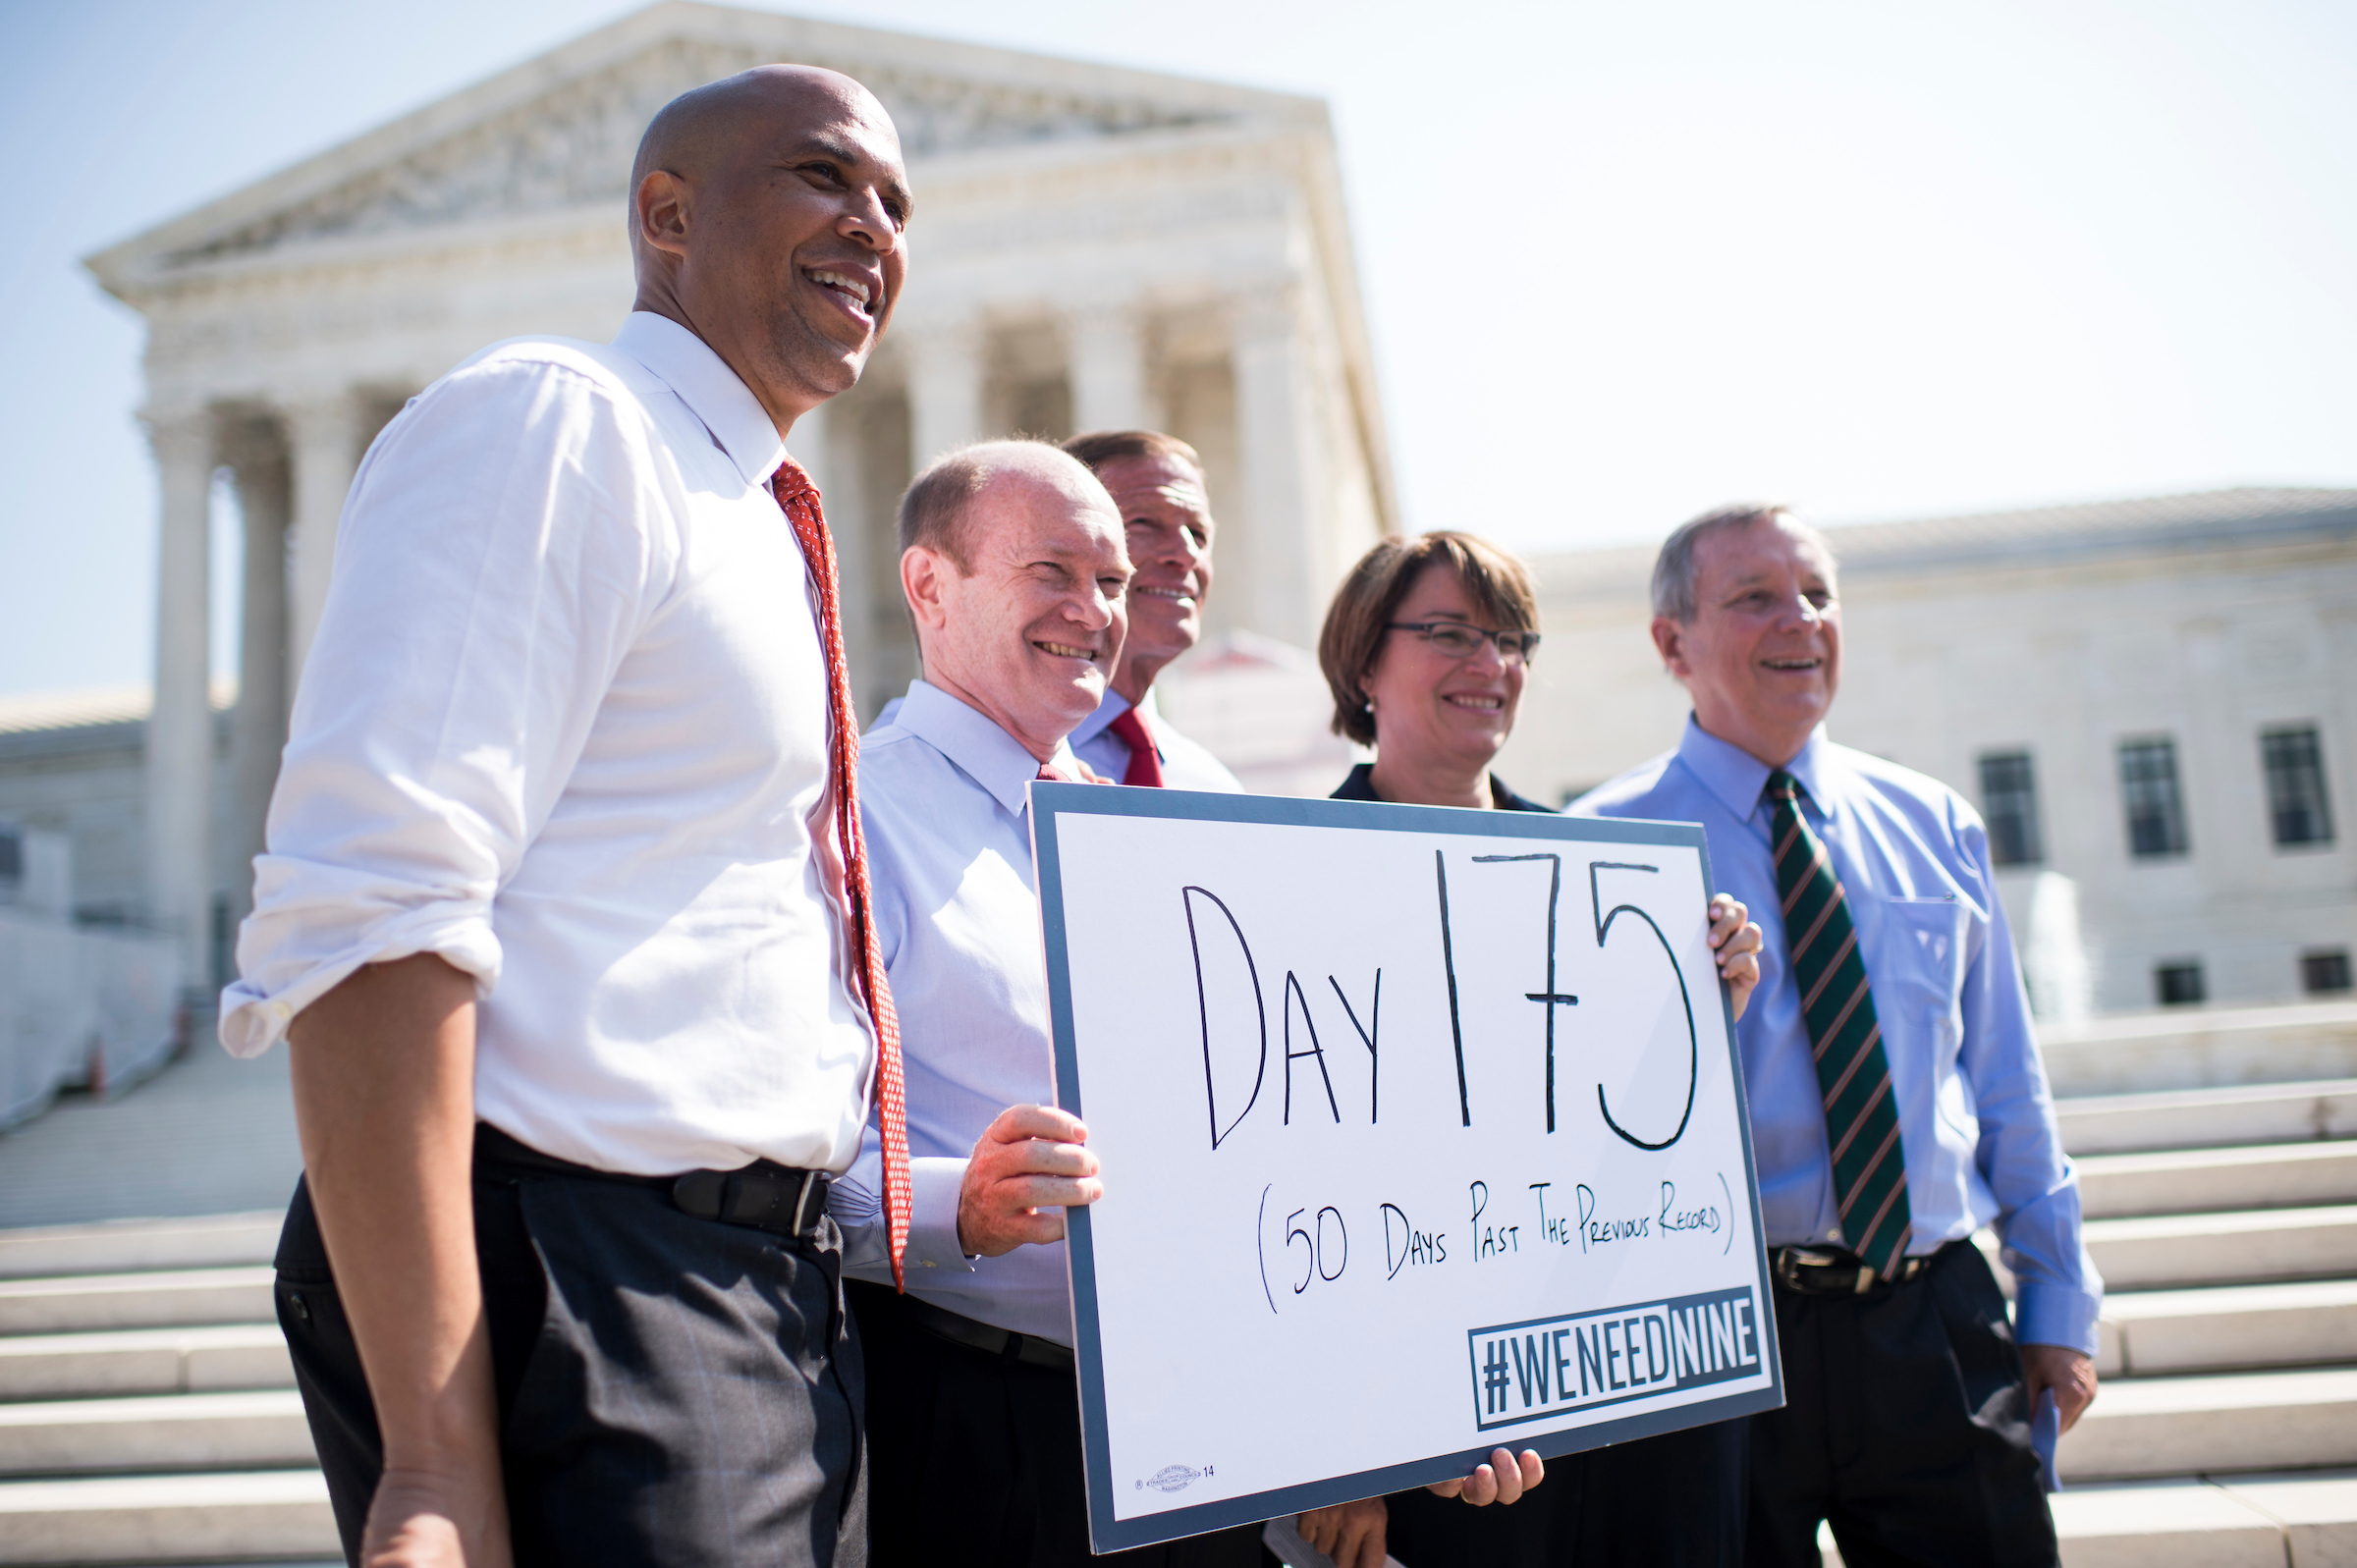 "From left, Sen. Cory Booker, D-N.J., Sen. Chris Coons, D-Del., Sen. Richard Blumenthal, D-Conn., Sen. Amy Klobuchar, D-Minn., and Sen. Richard Durbin, D-Ill., hold a sign which reads ""Day 175"" before their press conference on Sept. 7, 2016, to call on senators to give Supreme Court nominees Judge Merrick Garland a hearing and vote. (Bill Clark/CQ Roll Call)"